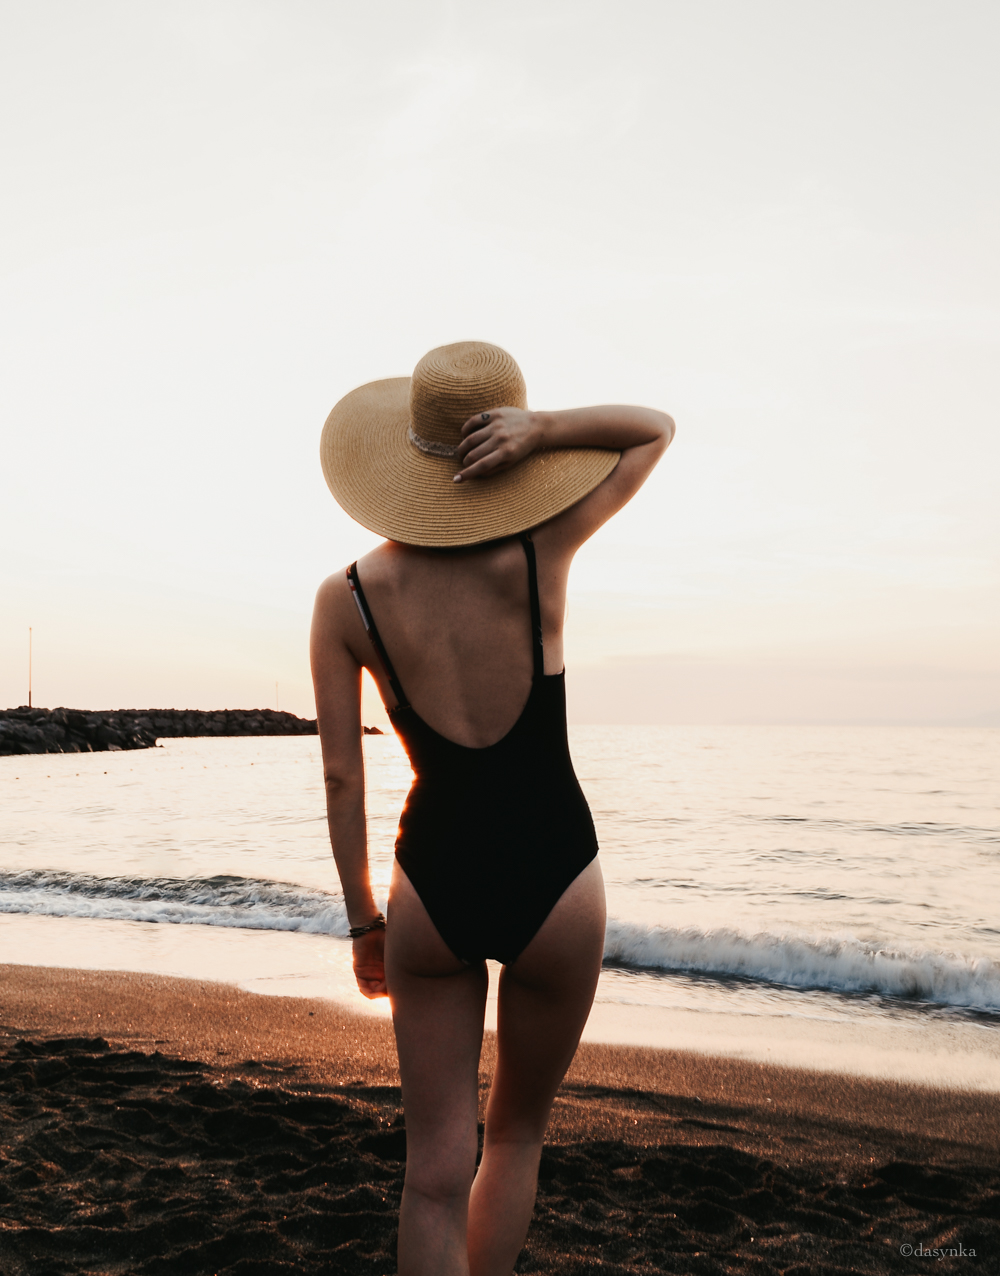 dasynka-fashion-blogger-sea-summer-asos-high-waist-swimsuit-bikini-sunset-beach-body-fit-style-inspo-pinterest-hat-zara-hm